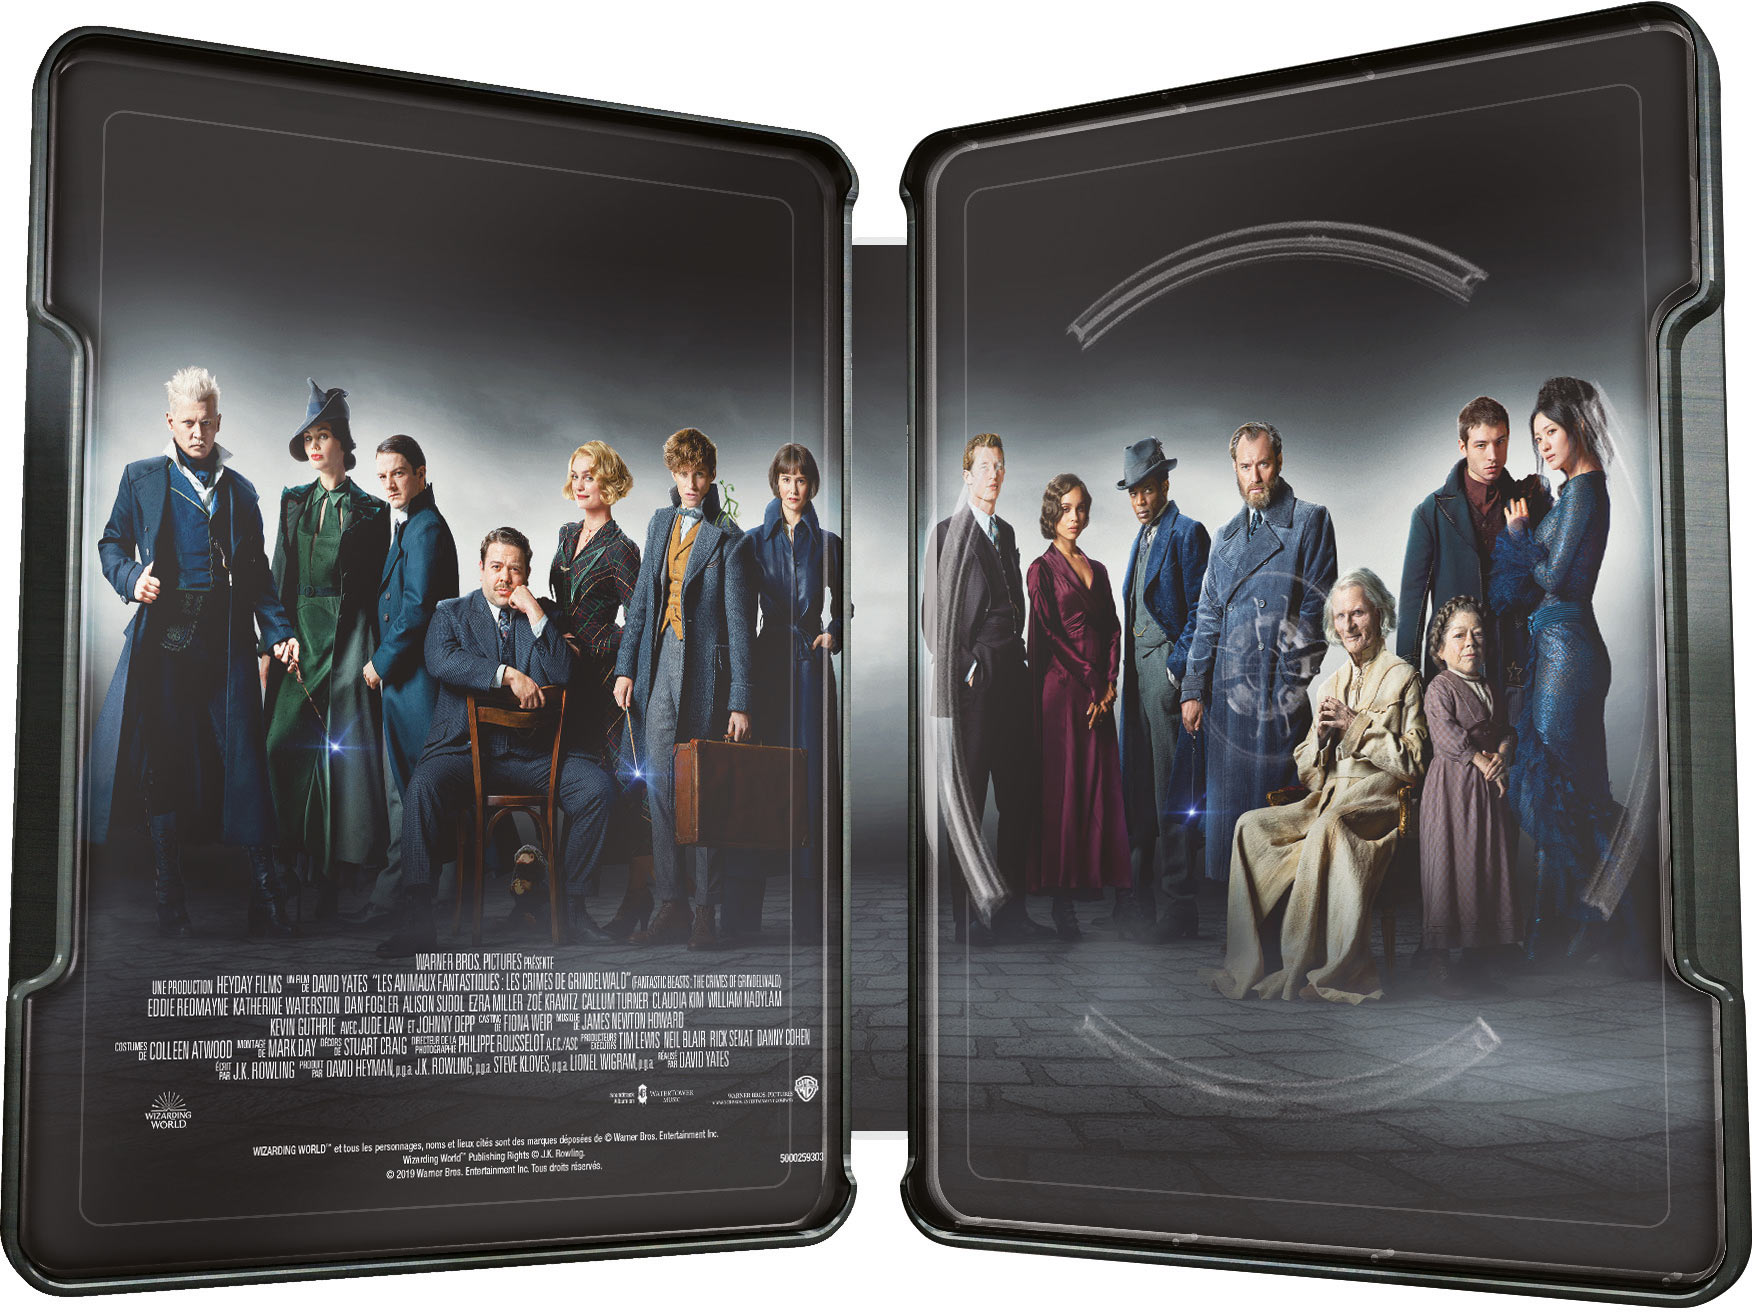 Les Animaux Fantastiques : Les Crimes de Grindelwald - 4K Ultra HD + Blu-ray 3D + Blu-ray + Blu-ray Version Longue - SteelBook